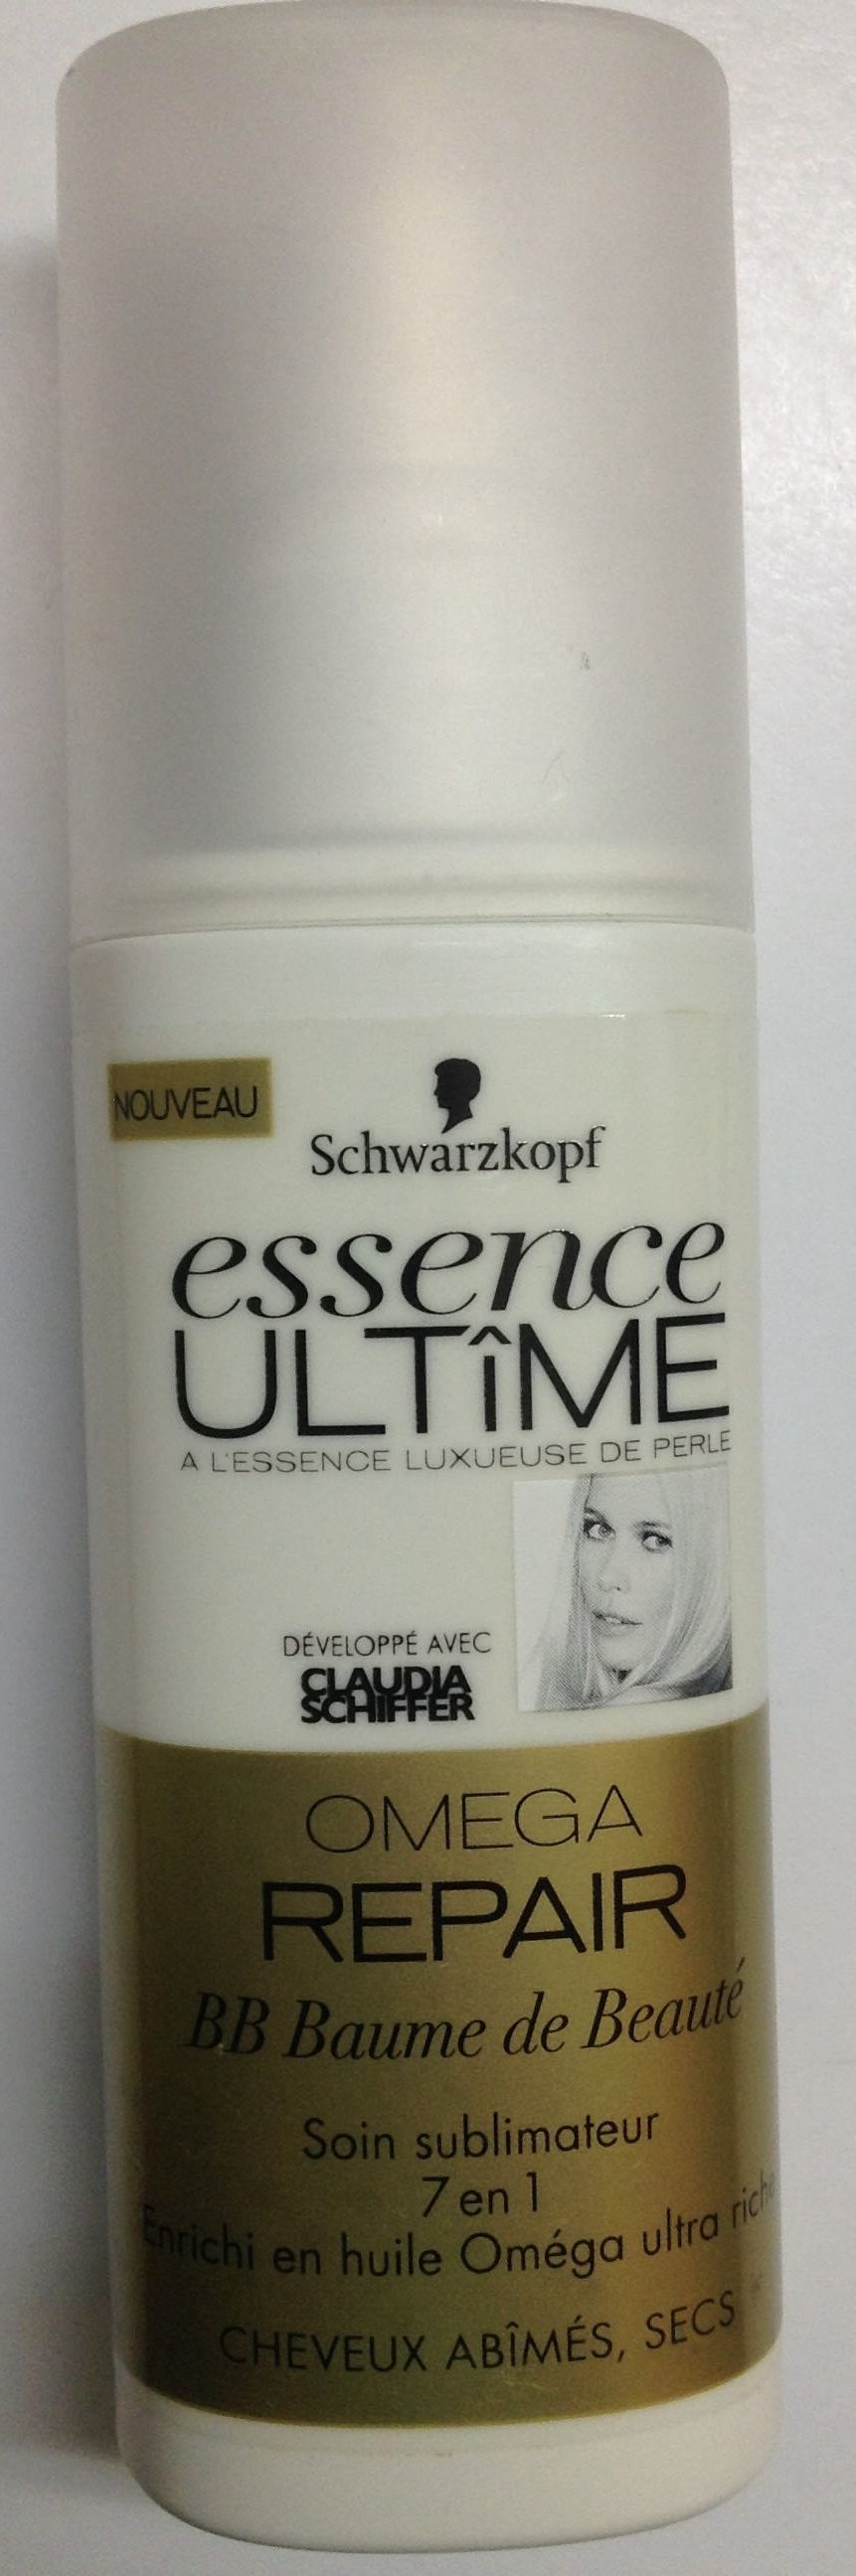 Essence Ultime Omega Repair - Product